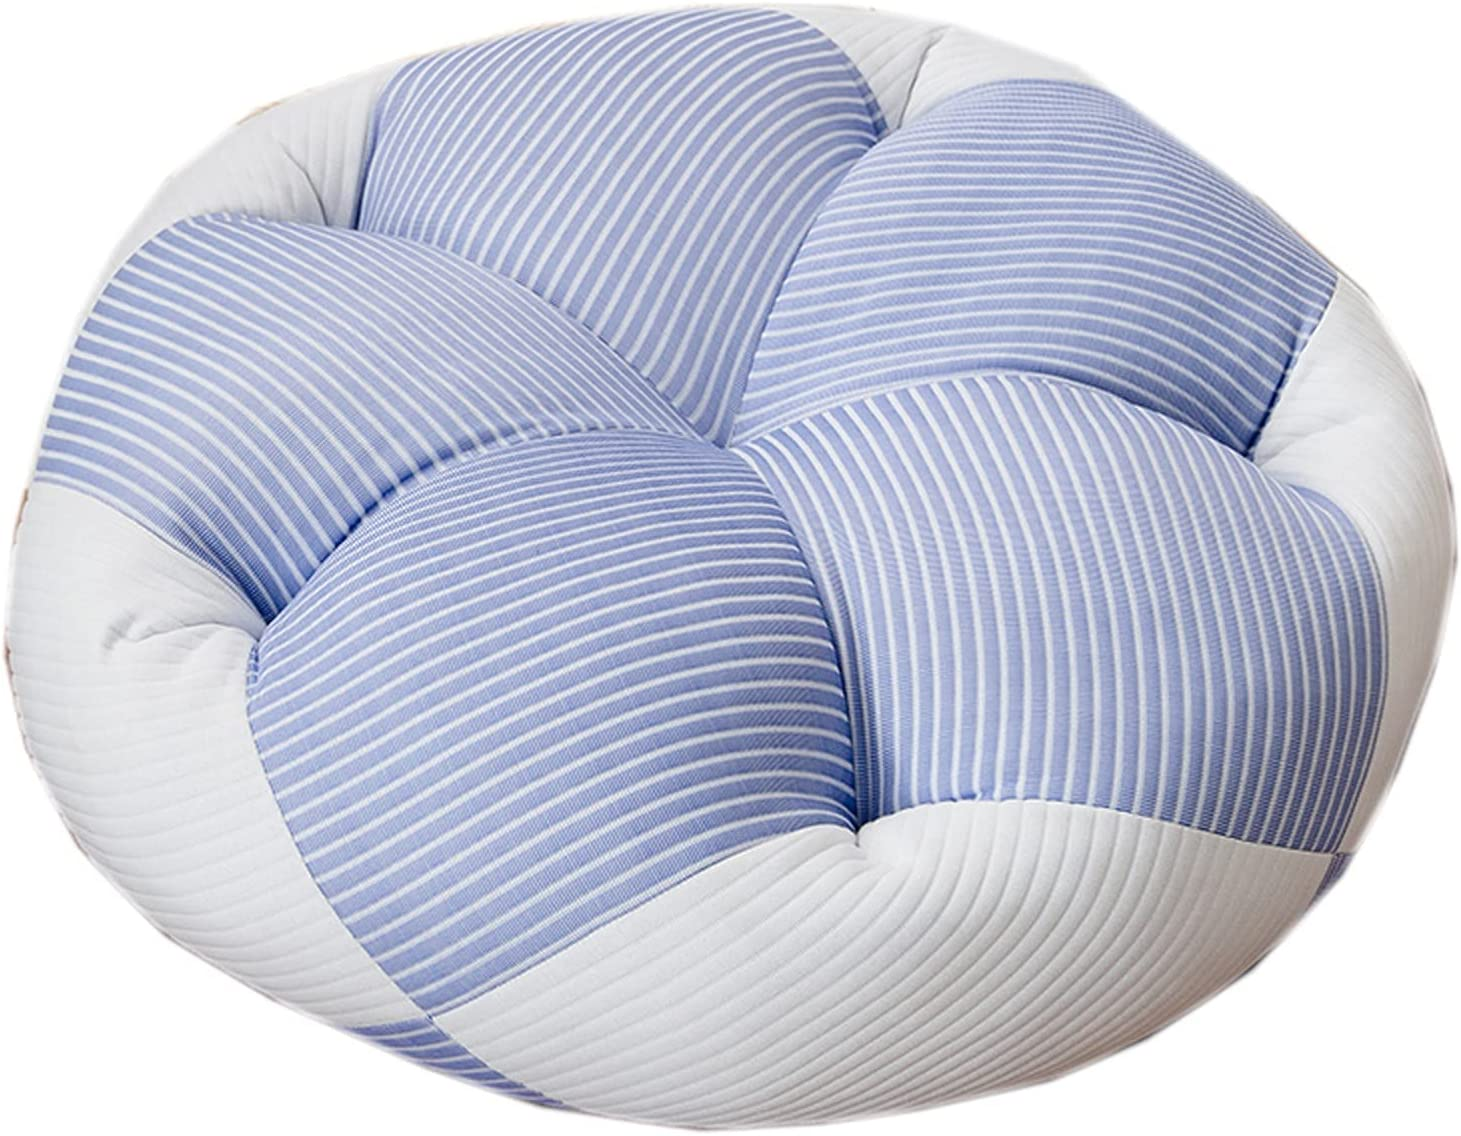 TBUDAR Challenge the lowest price Meditation Cushion Chicago Mall Comfortable and a Cotton Soft Meditati